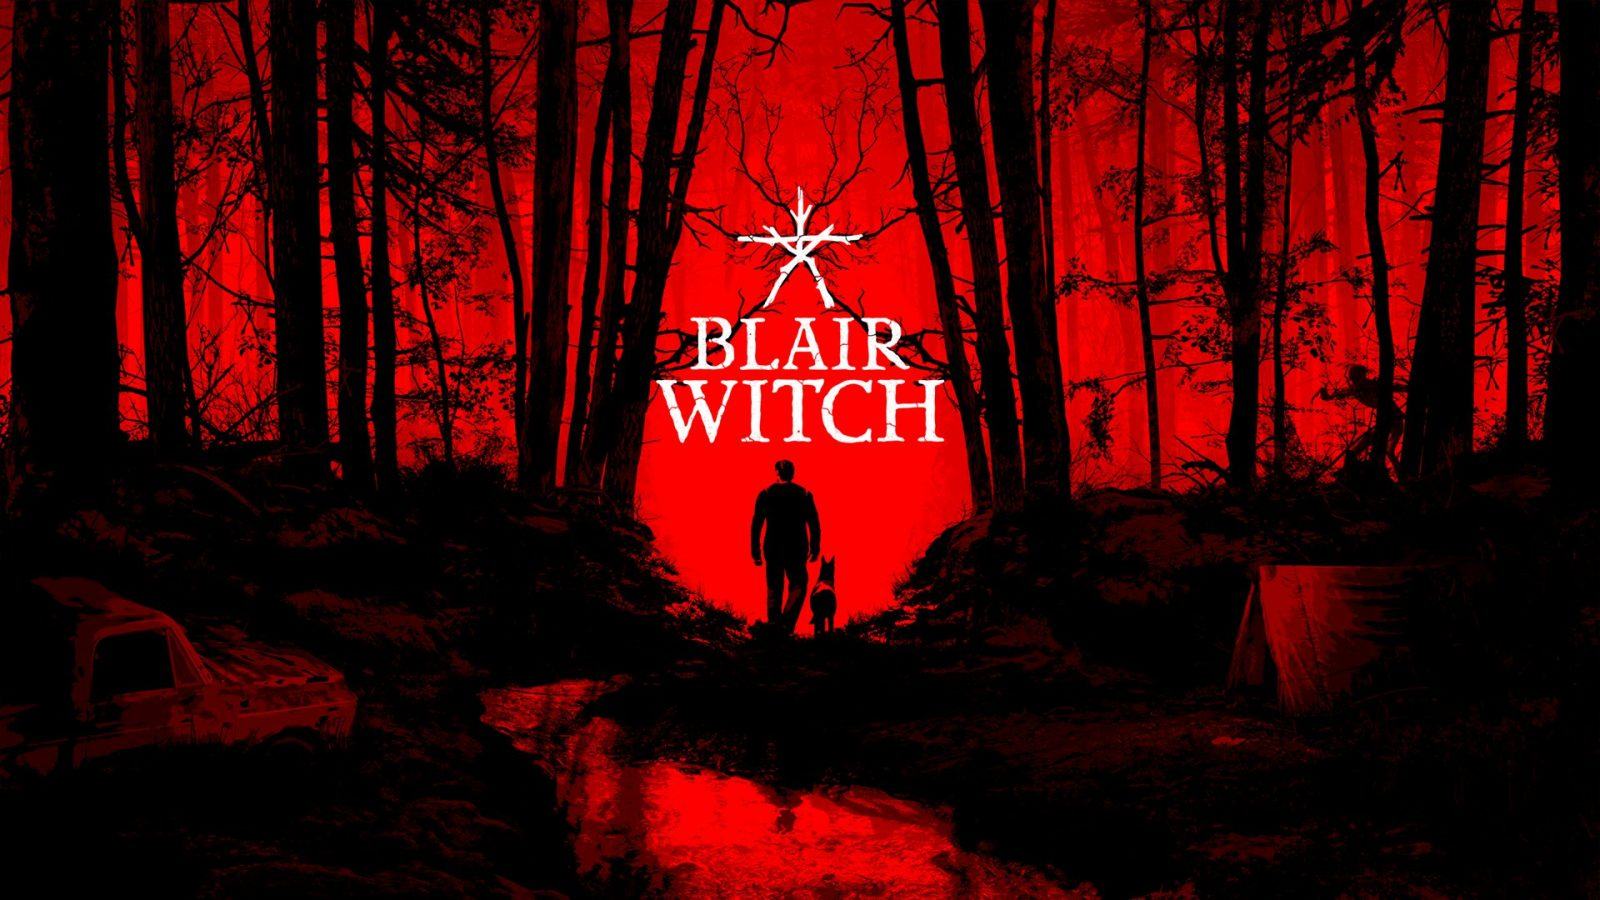 New Blair Witch Trailer Shows Off Canine Companion 'Bullet' And New Gameplay